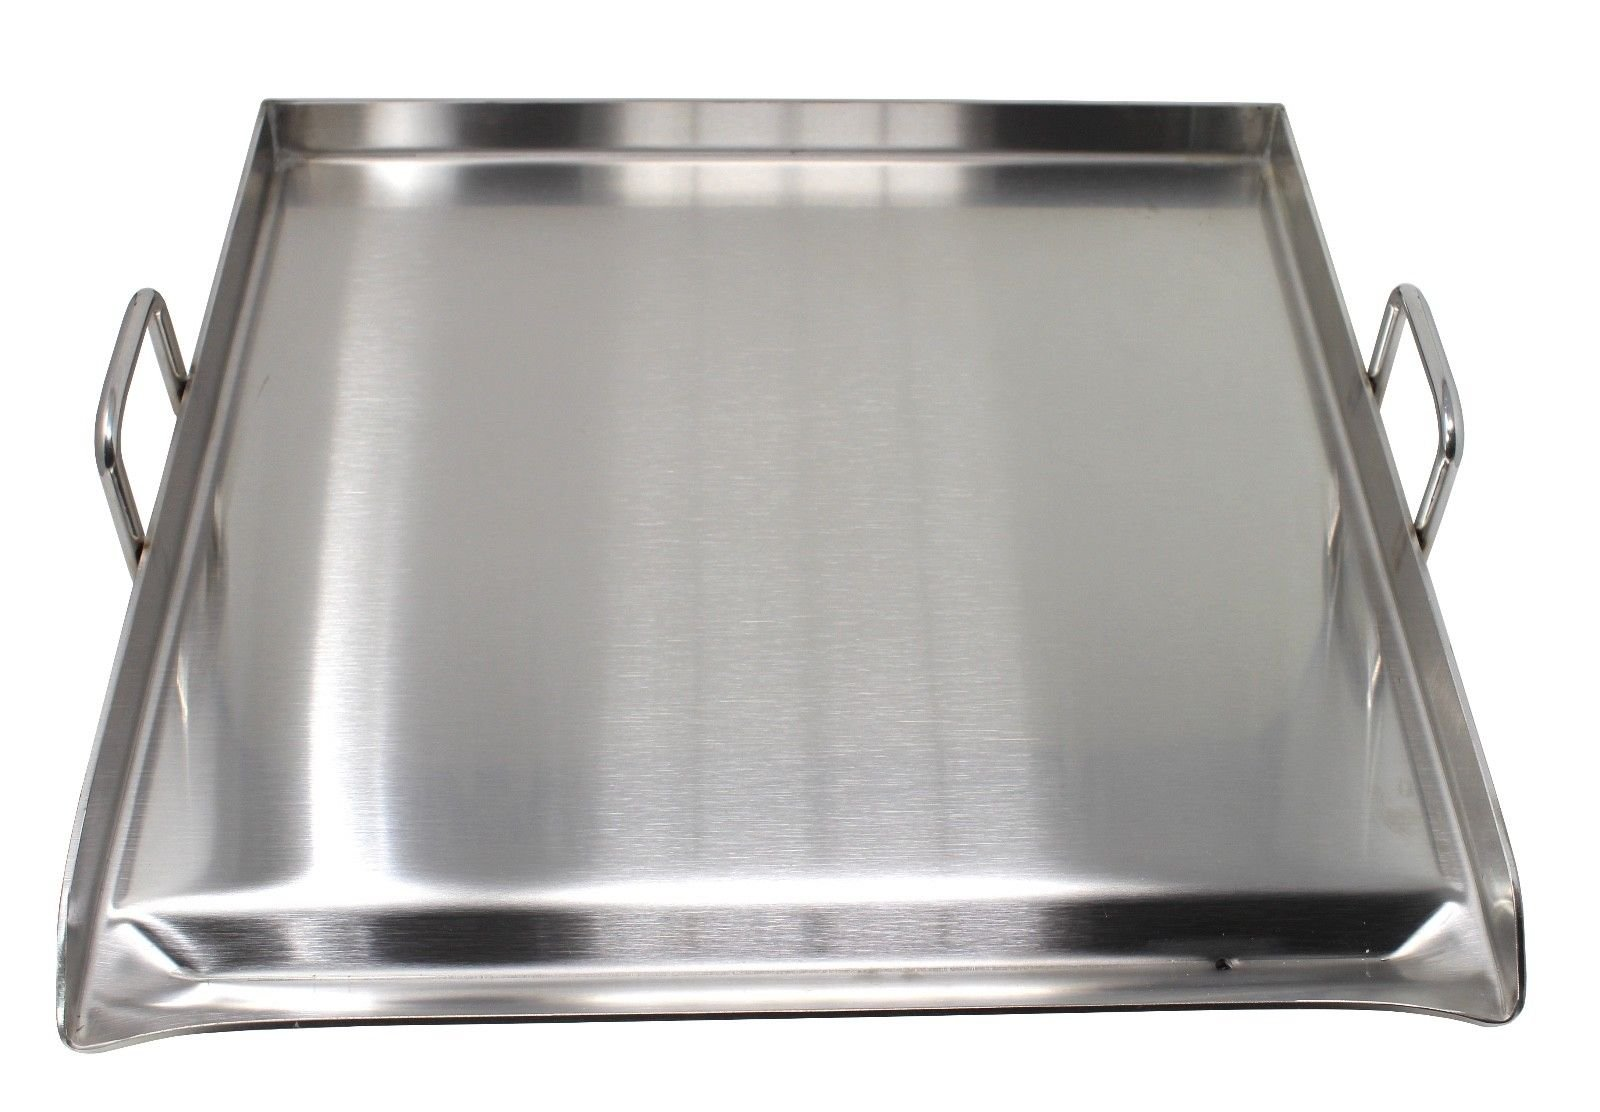 9TRADING 20'' x 20'' Stainless Steel Portable Add on Flat Top Griddle Outdoor Stove,Free Tax, Delivered Within 10 Days